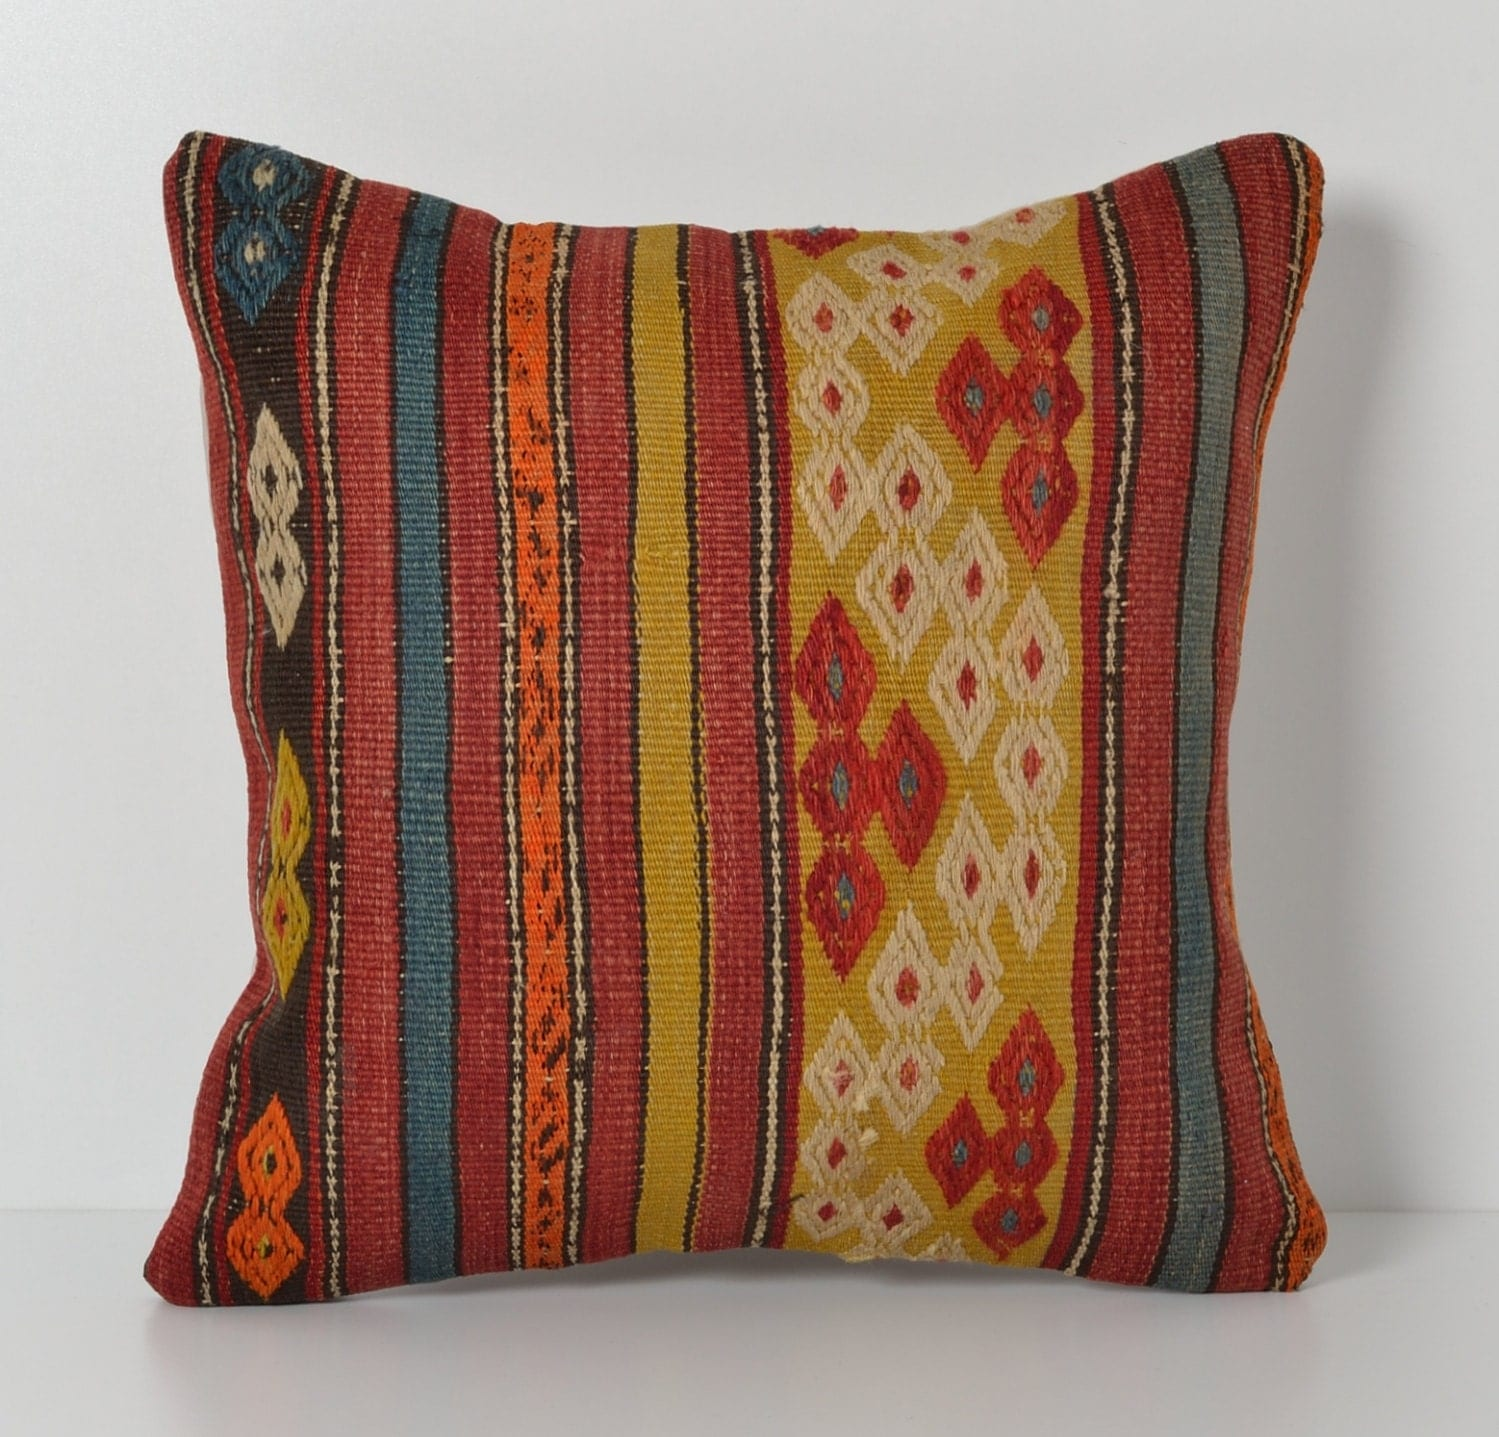 Vintage Throw Pillow Covers : Vintage Kilim Pillow Covers 16x16 Inches Throw Pillow Cover